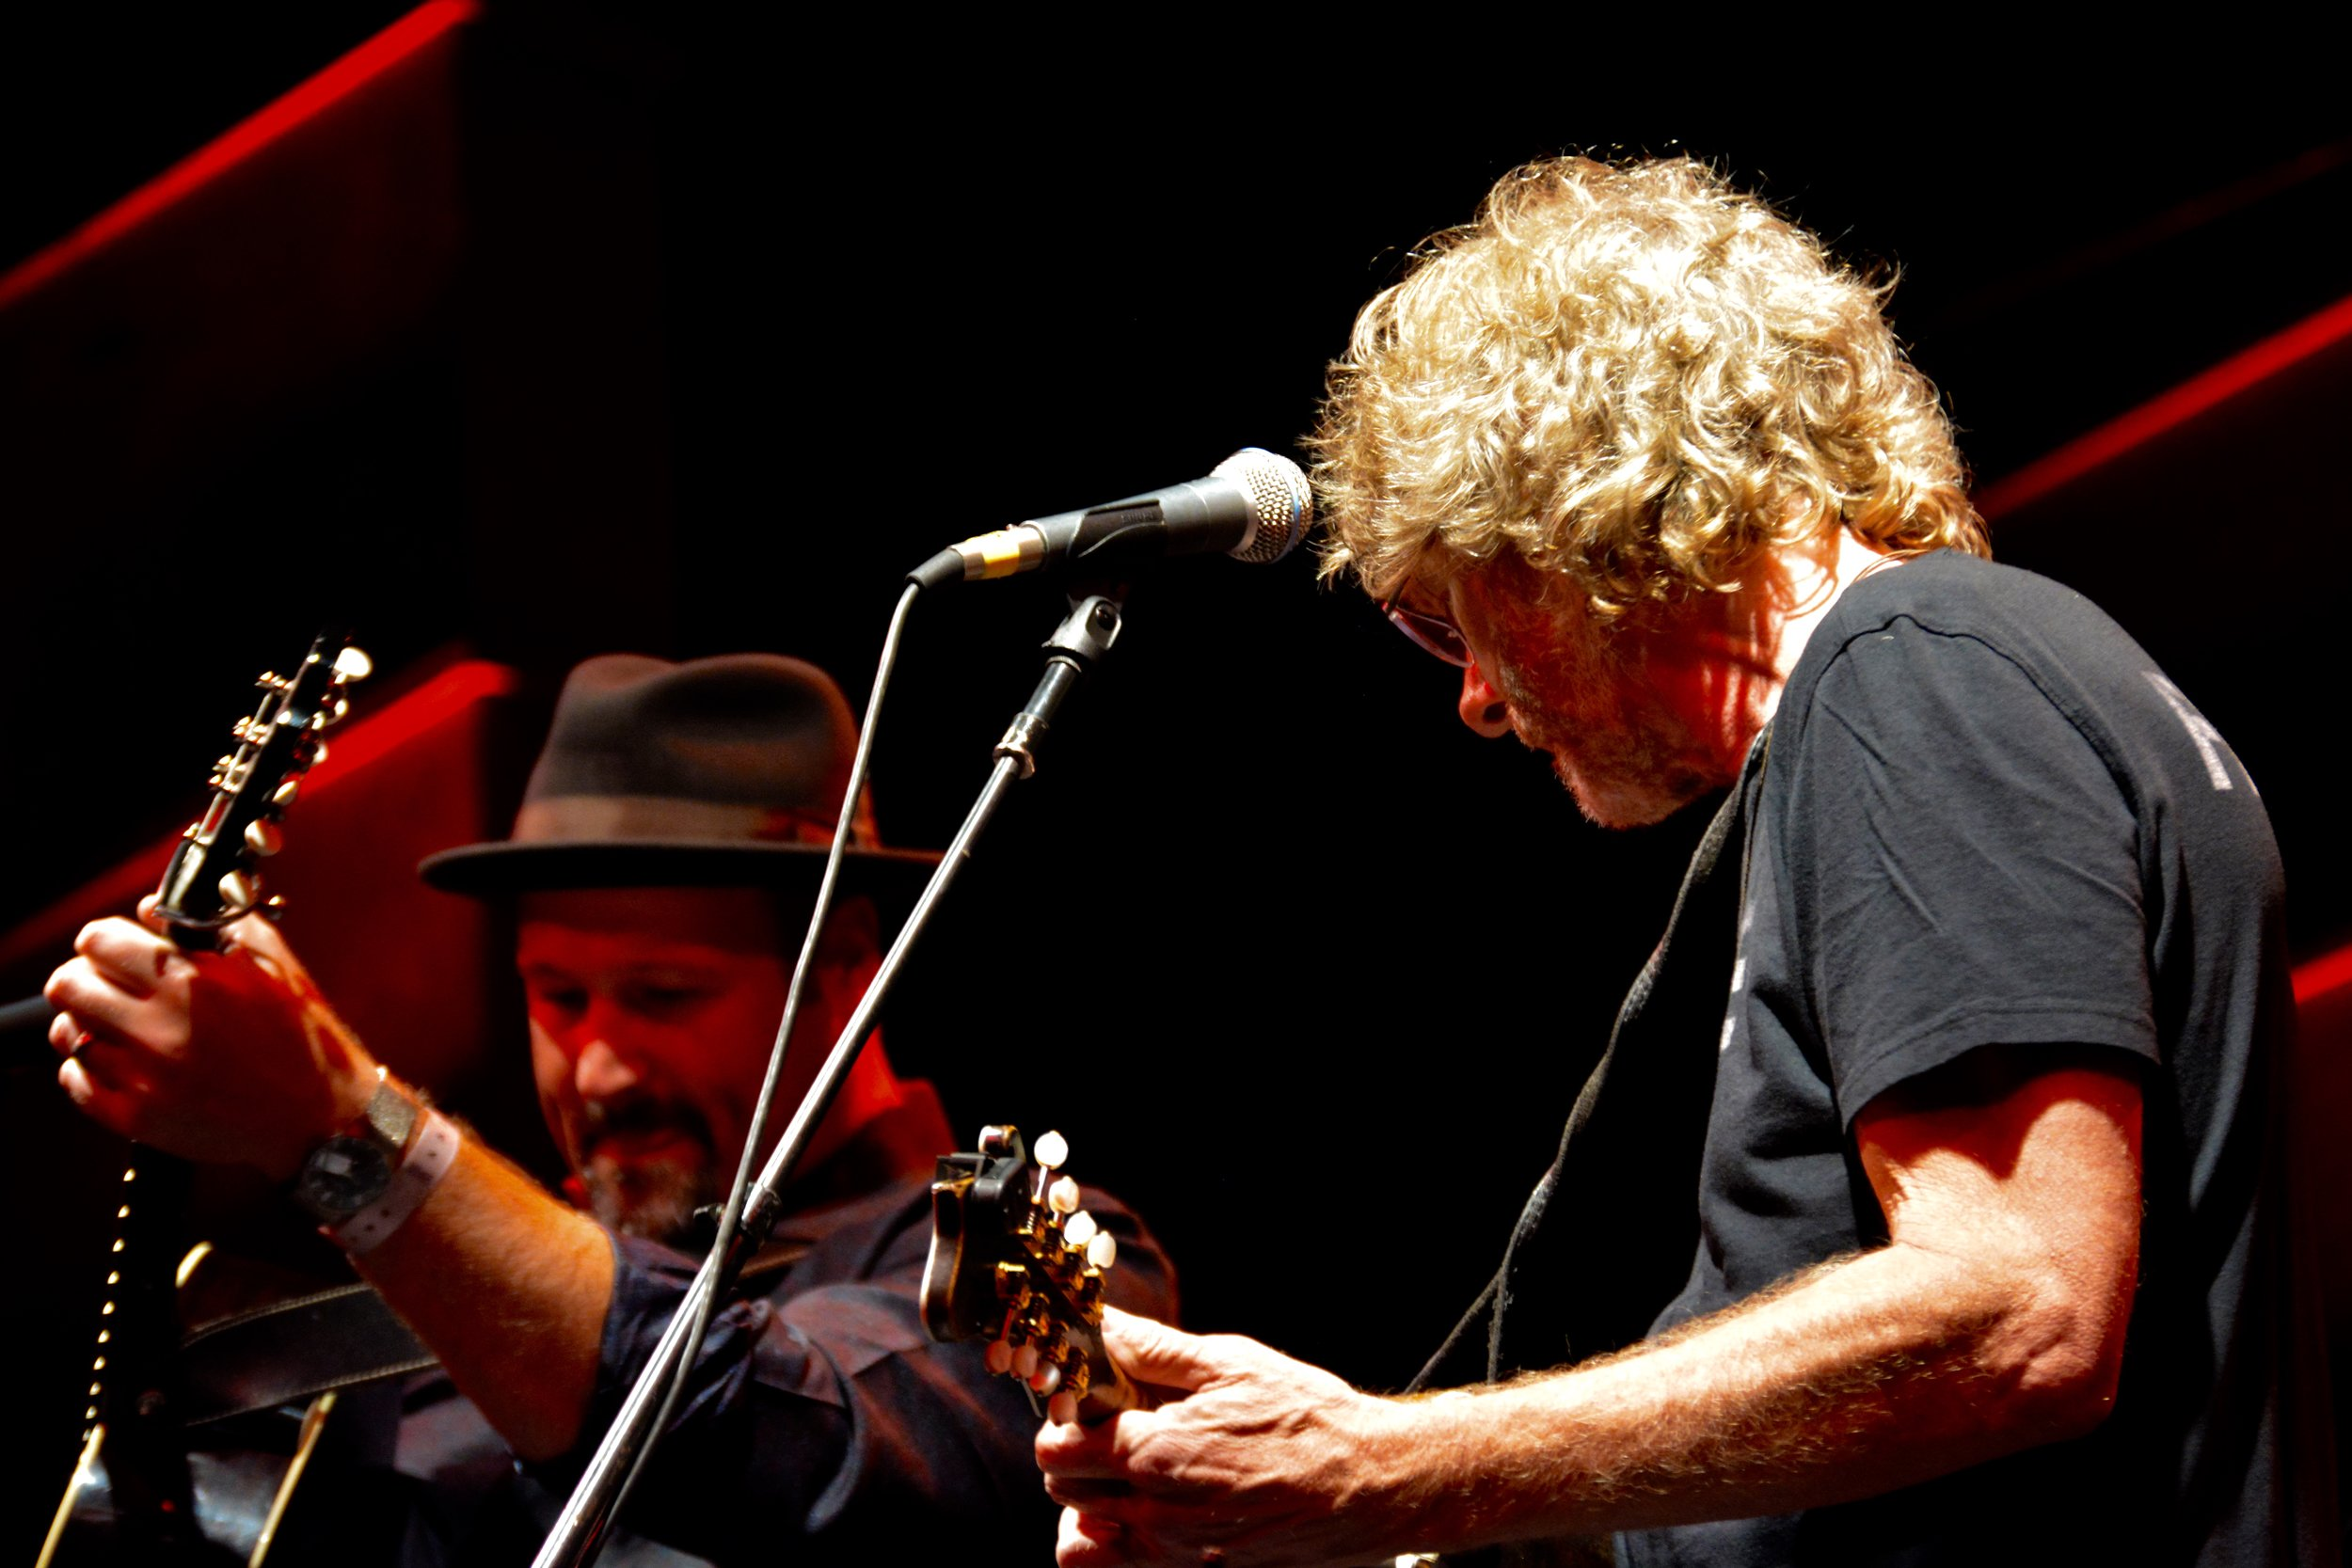 Sam Bush performed the first Rockygrass in 1973 and continues to be a staple at Rockygrass and Telluride Bluegrass Festival.jpg